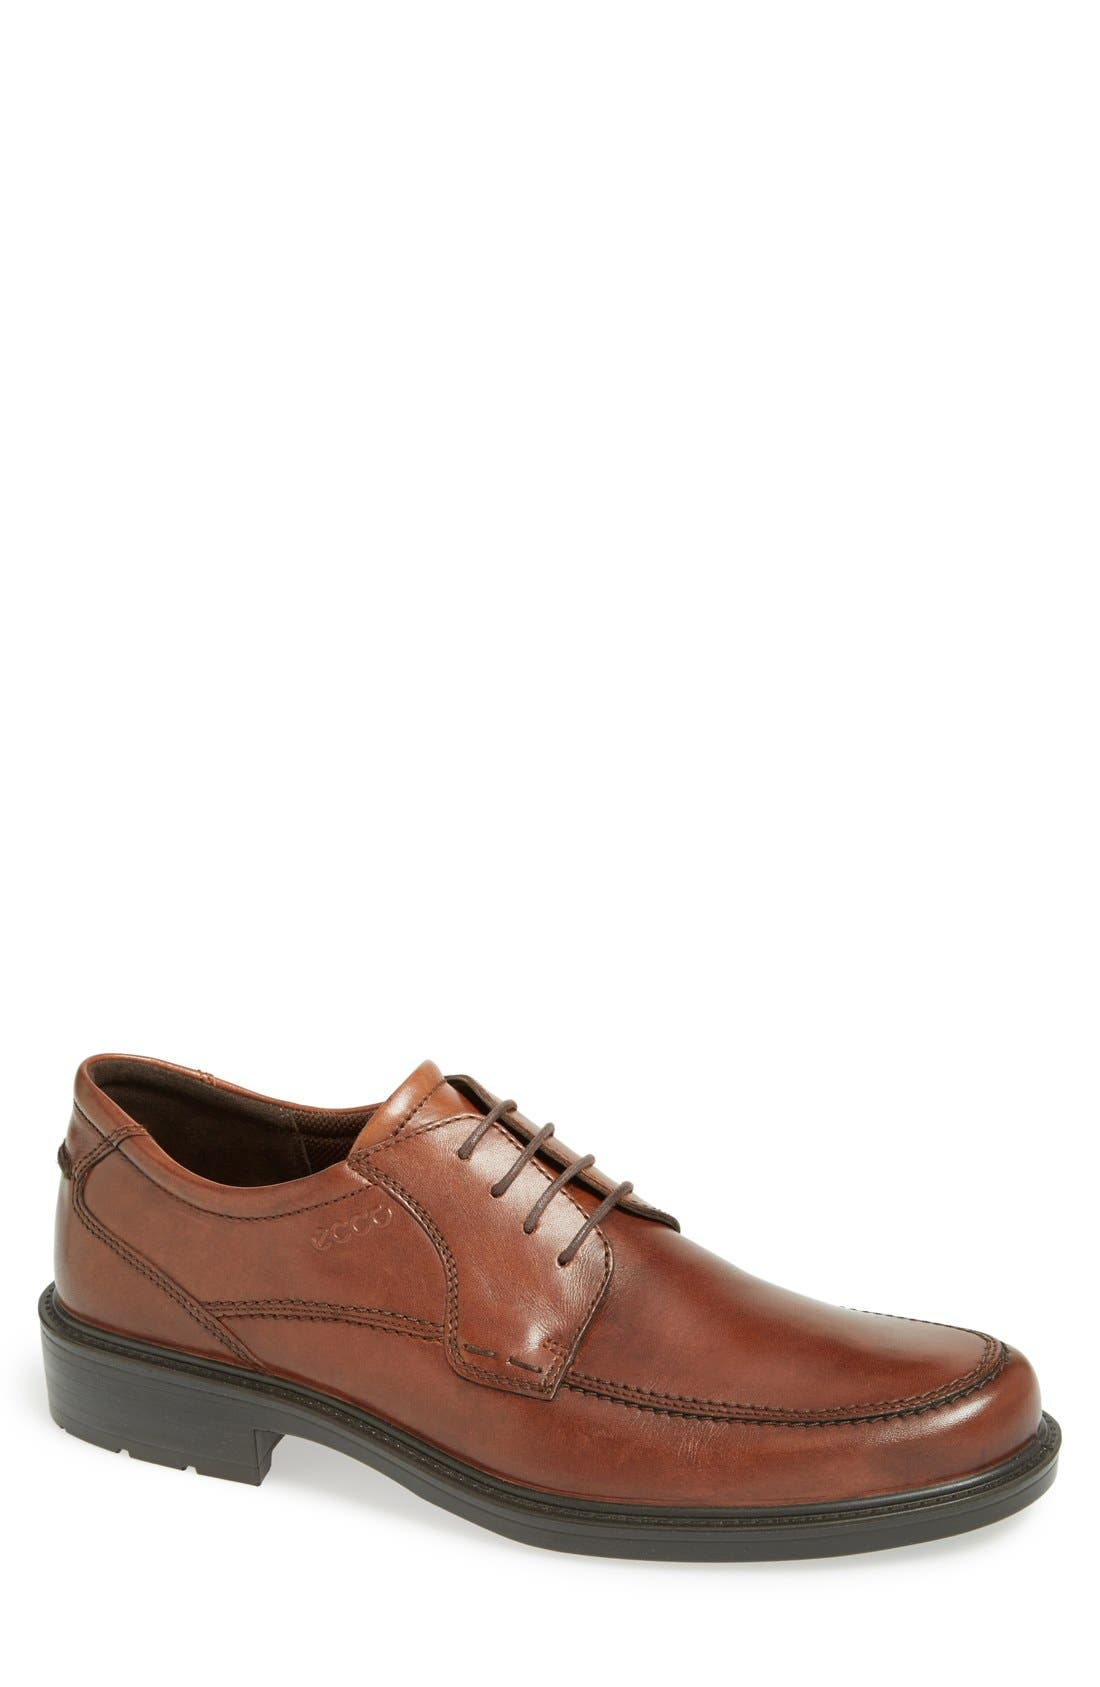 Alternate Image 1 Selected - ECCO 'Boston' Oxford (Men)